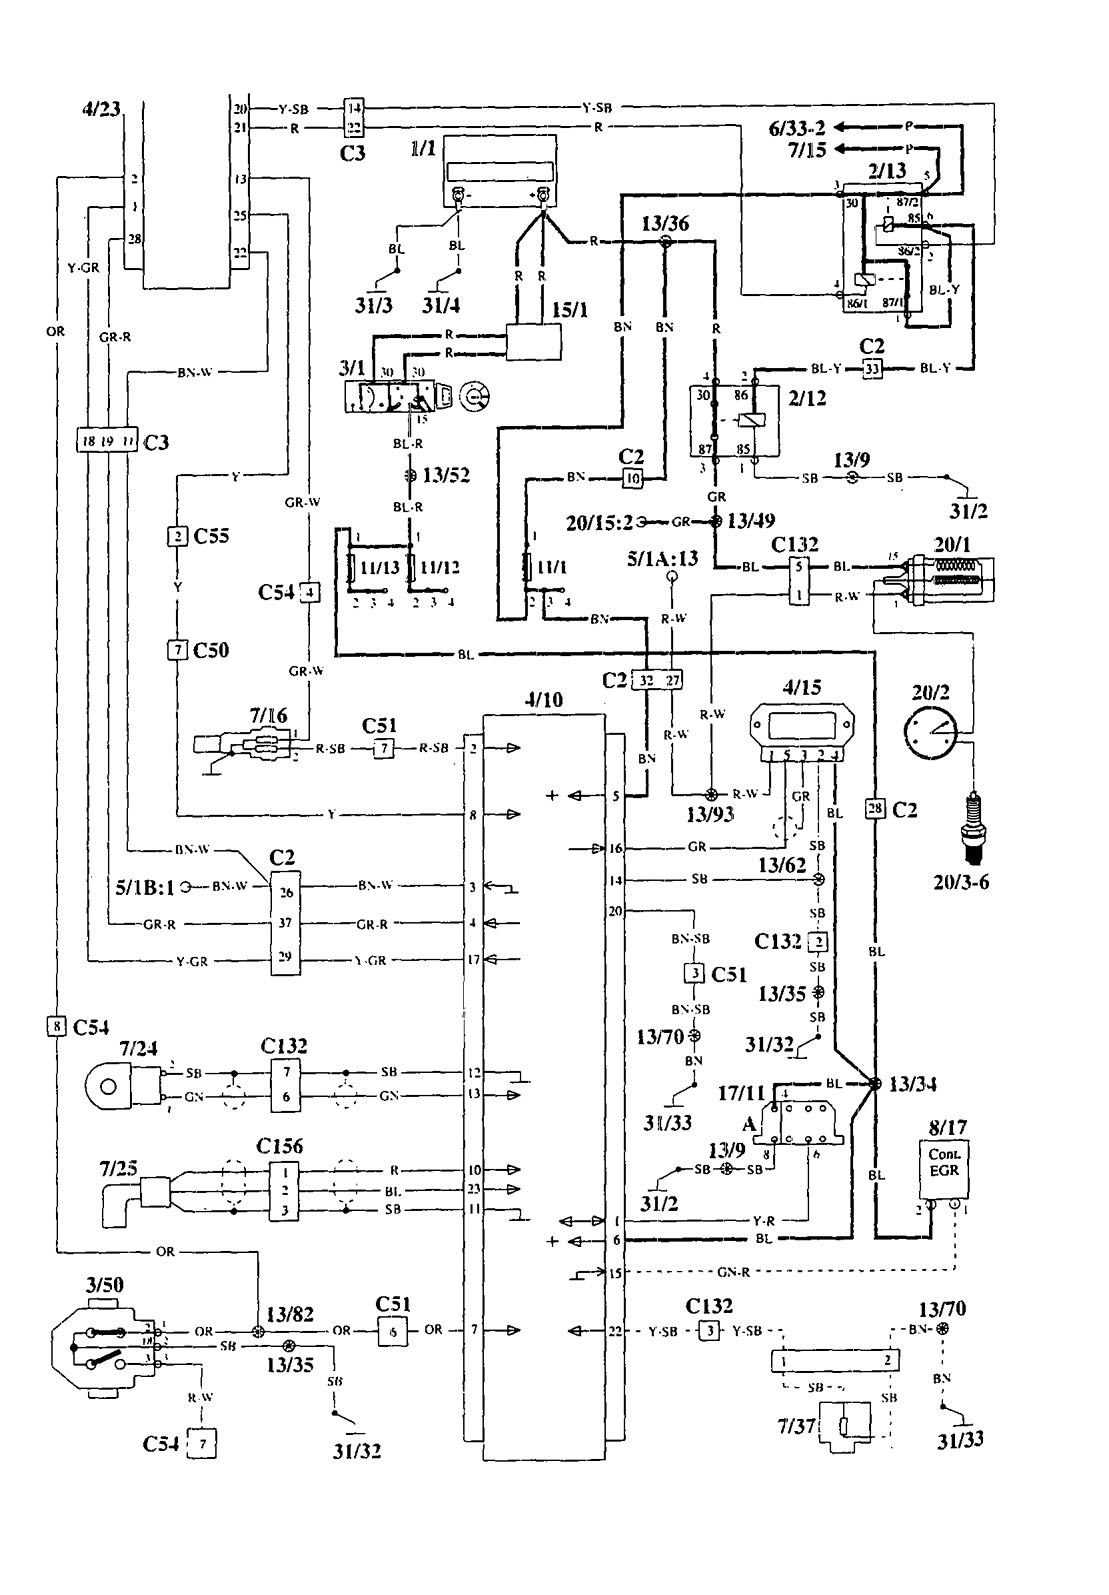 1995 Cadillac Deville Wiring Dlc Schematic from www.carknowledge.info